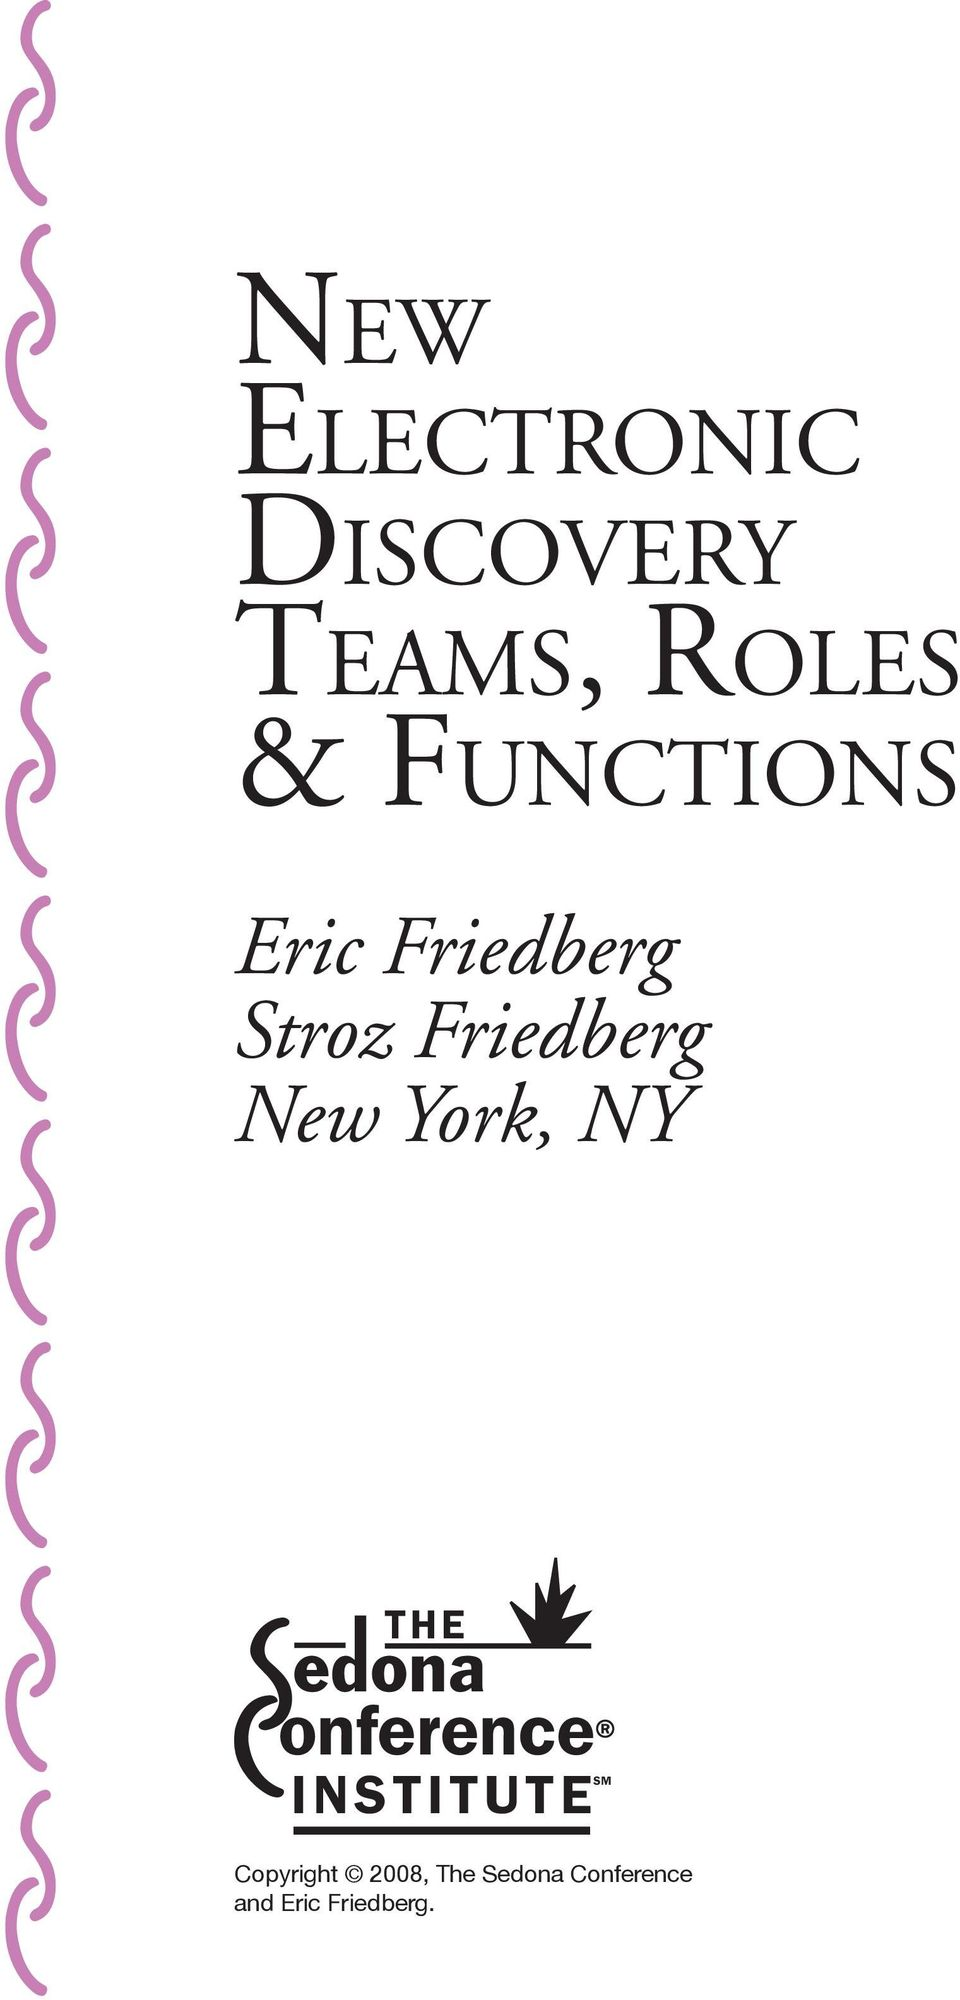 Friedberg New York, NY THE onference INSTITUTE